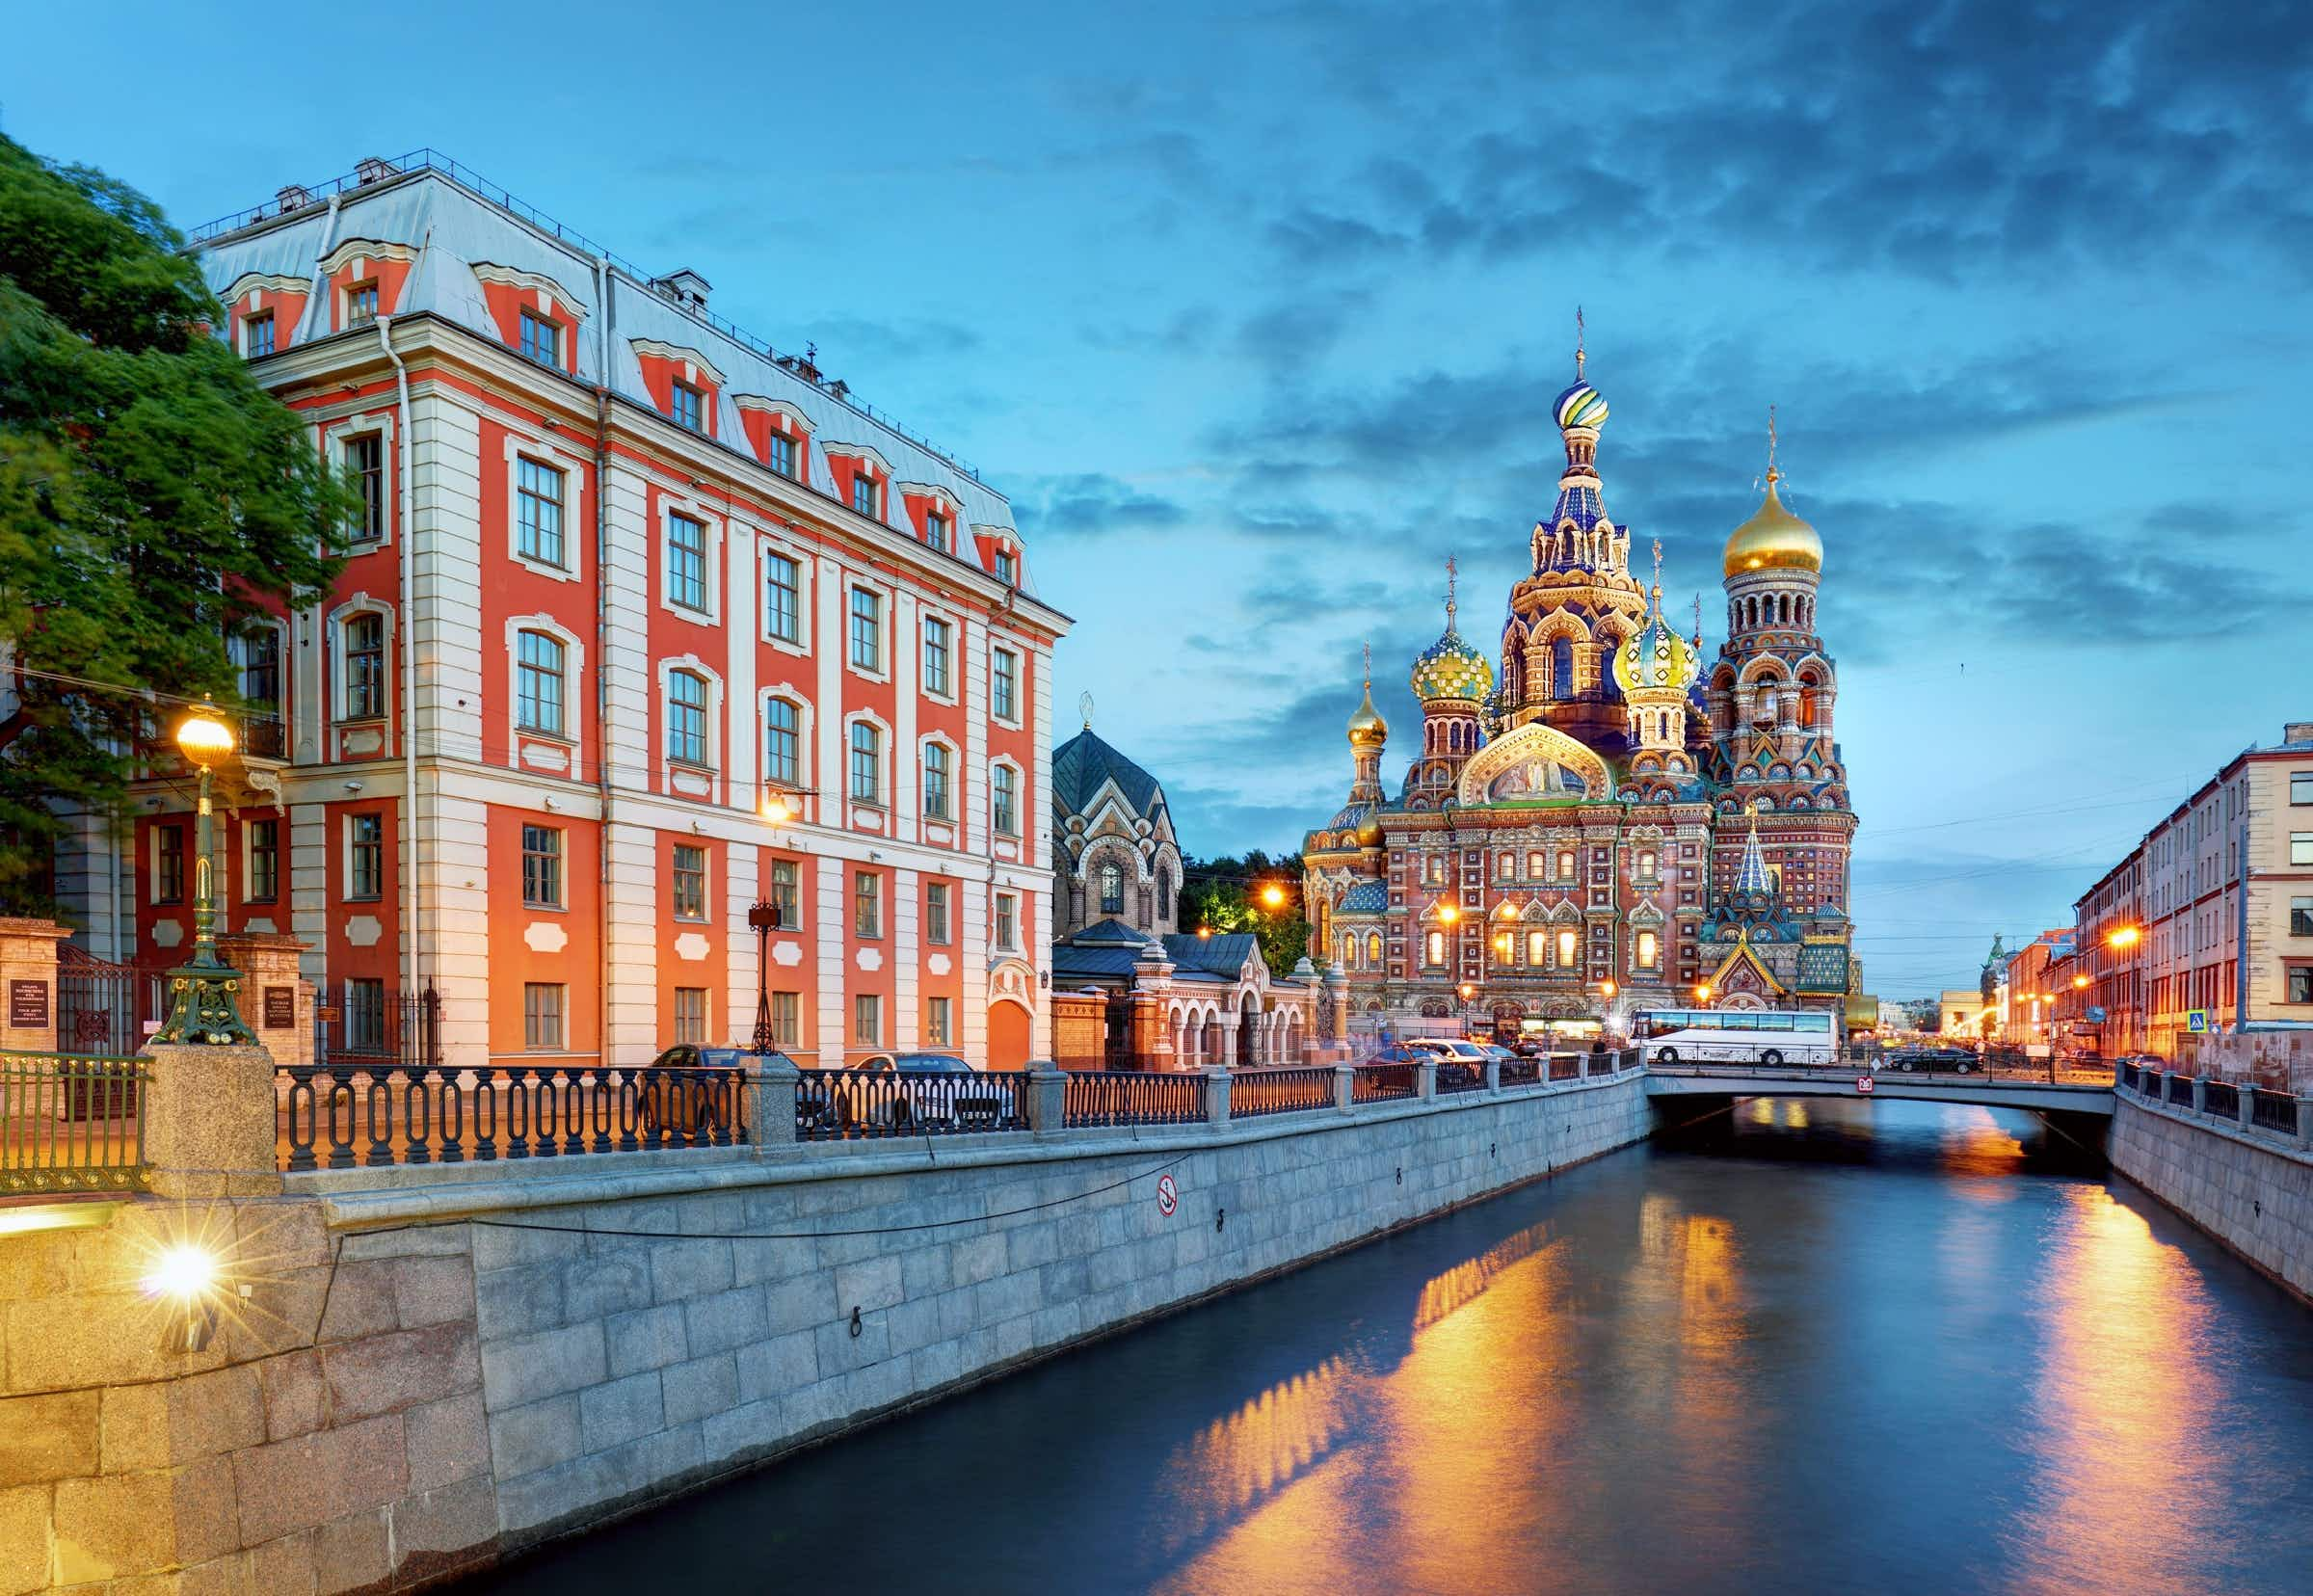 St Petersburg plans on welcoming more visitors by making it easier than ever to visit